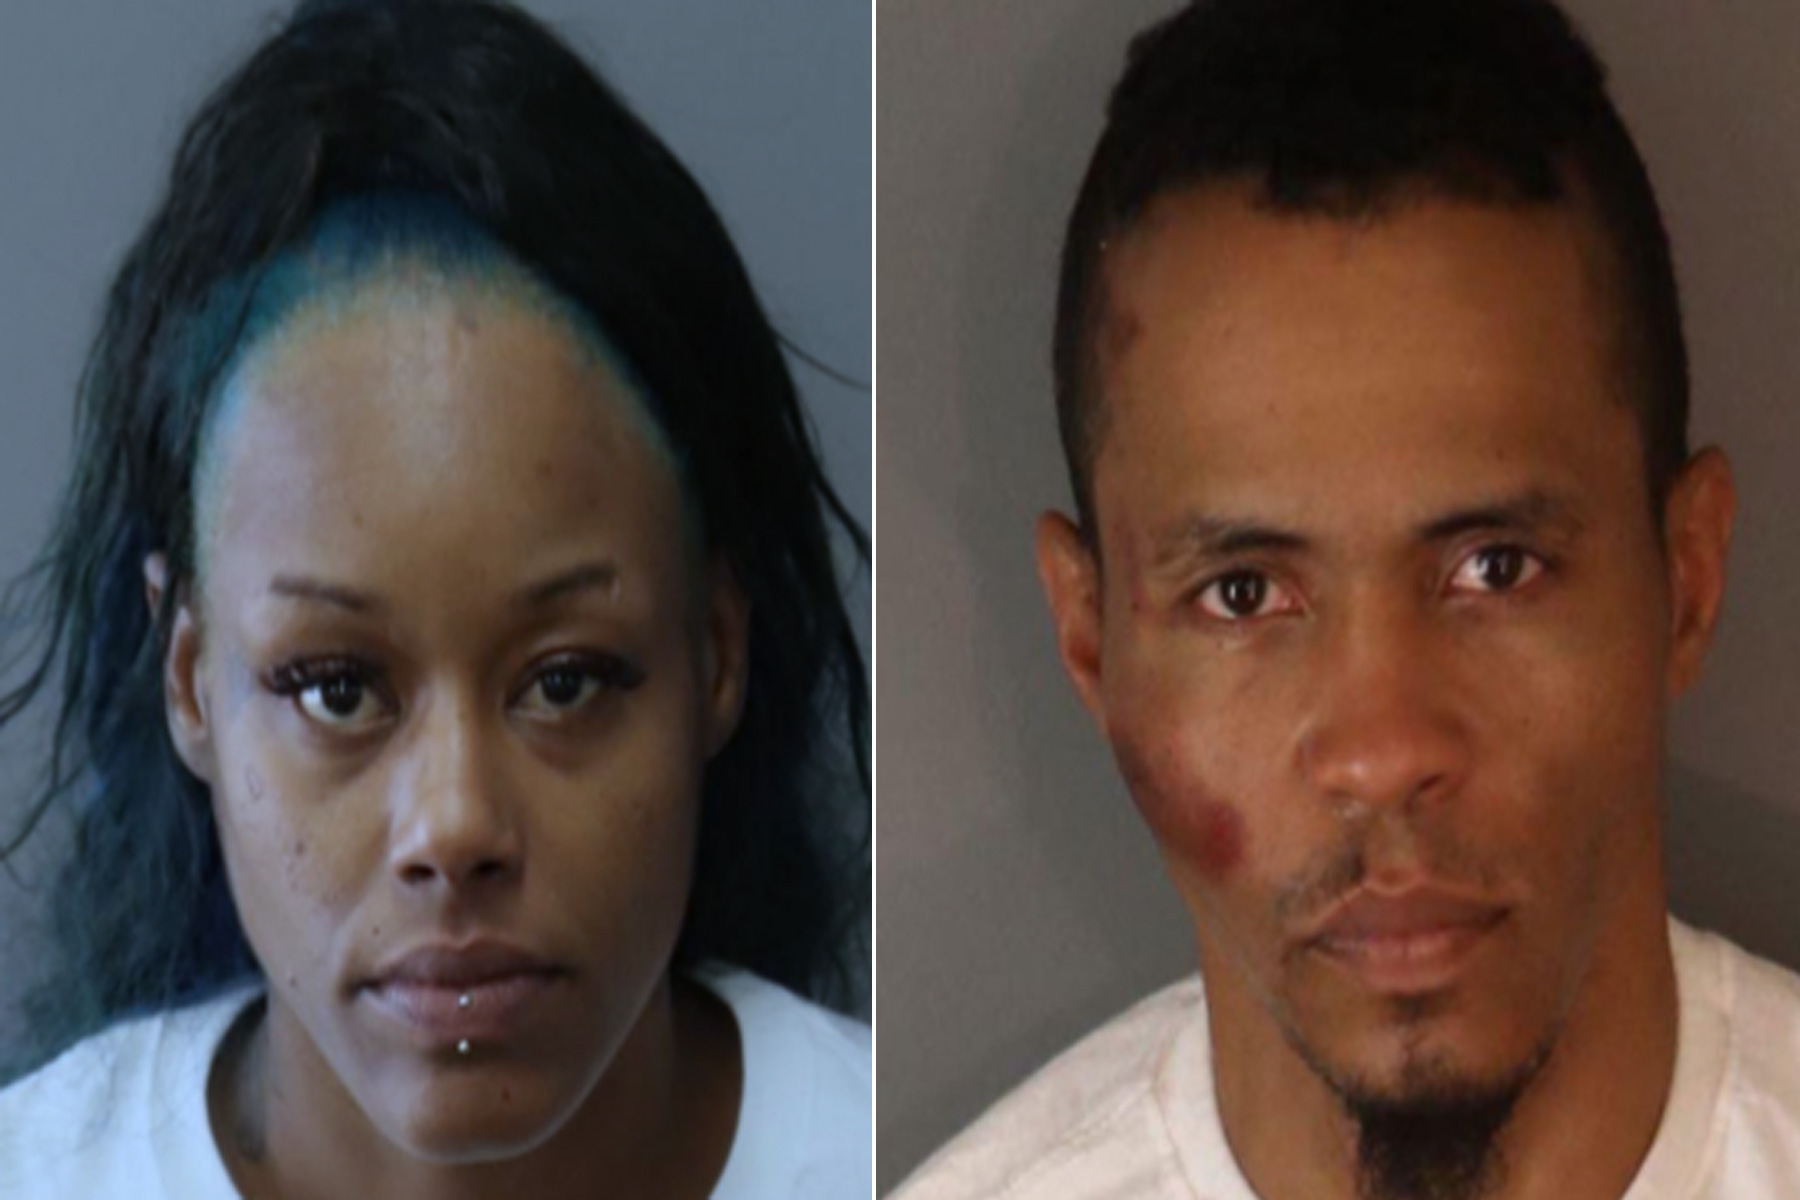 Lanika Shantel Williams (L) and Jermaine Lavelle Wheeler (R) are seen in photos released by the Riverside Police Department on May 18, 2021.